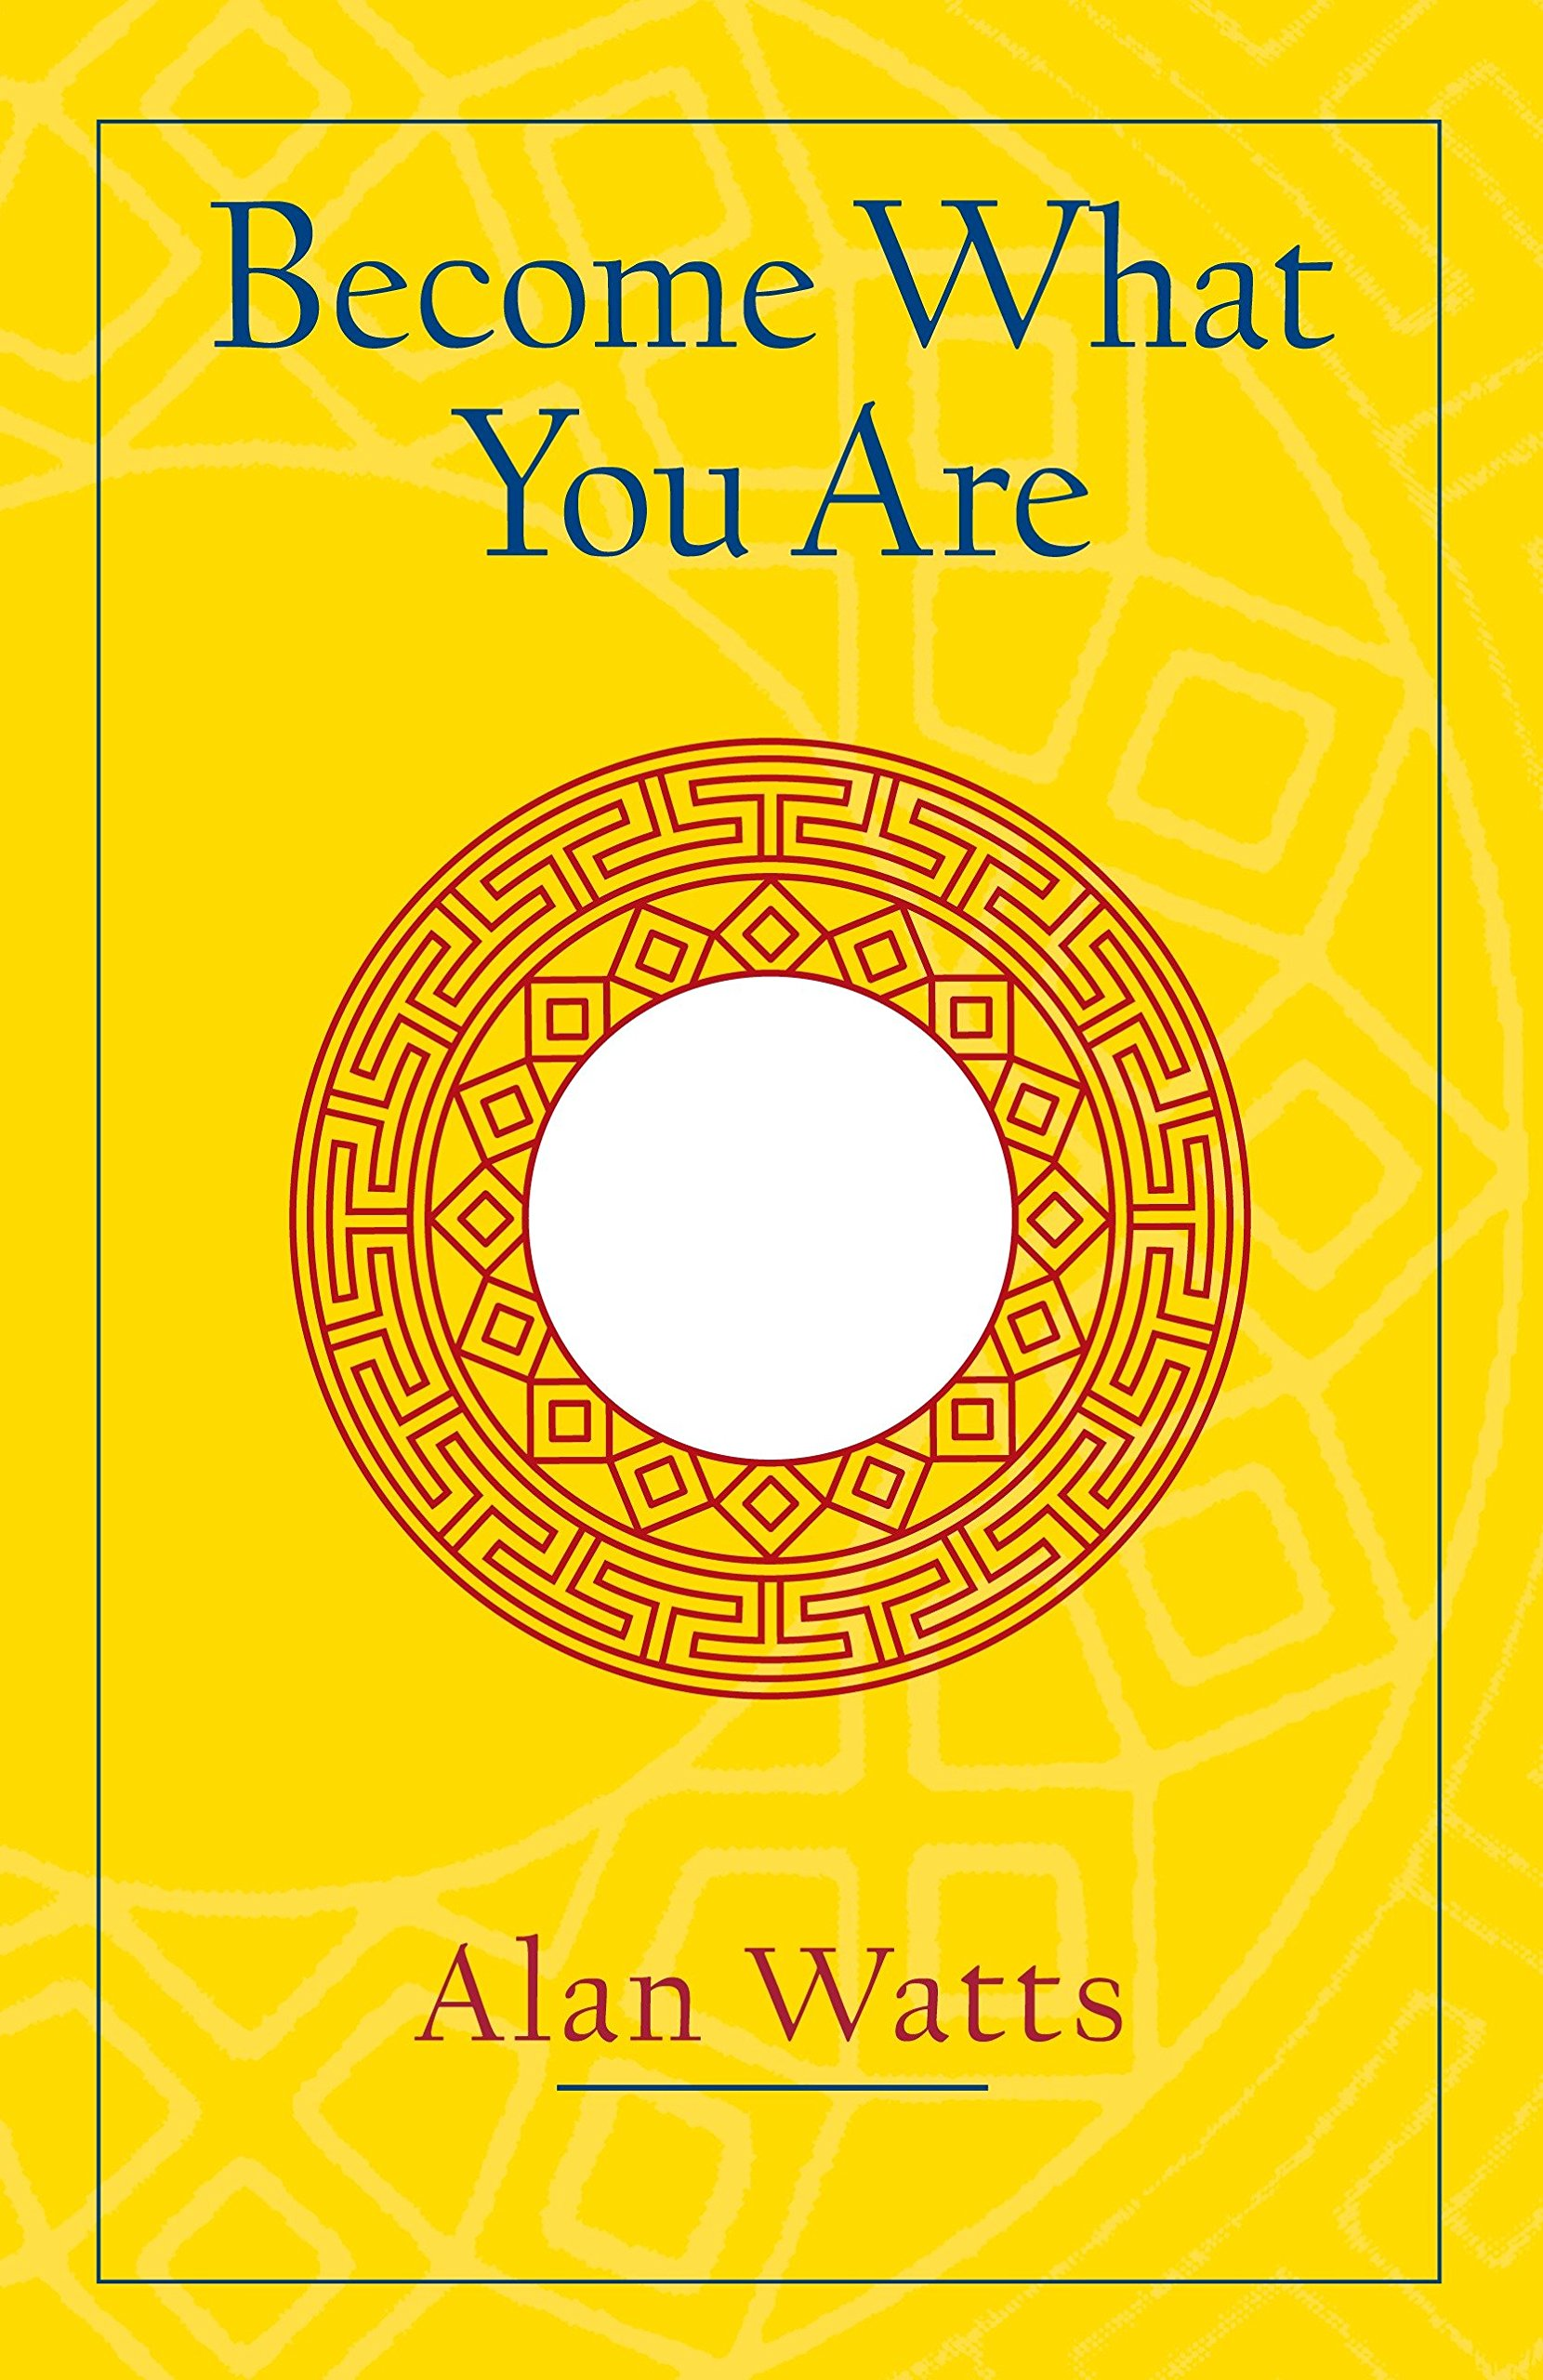 Alan Watts Become What You Are cover art